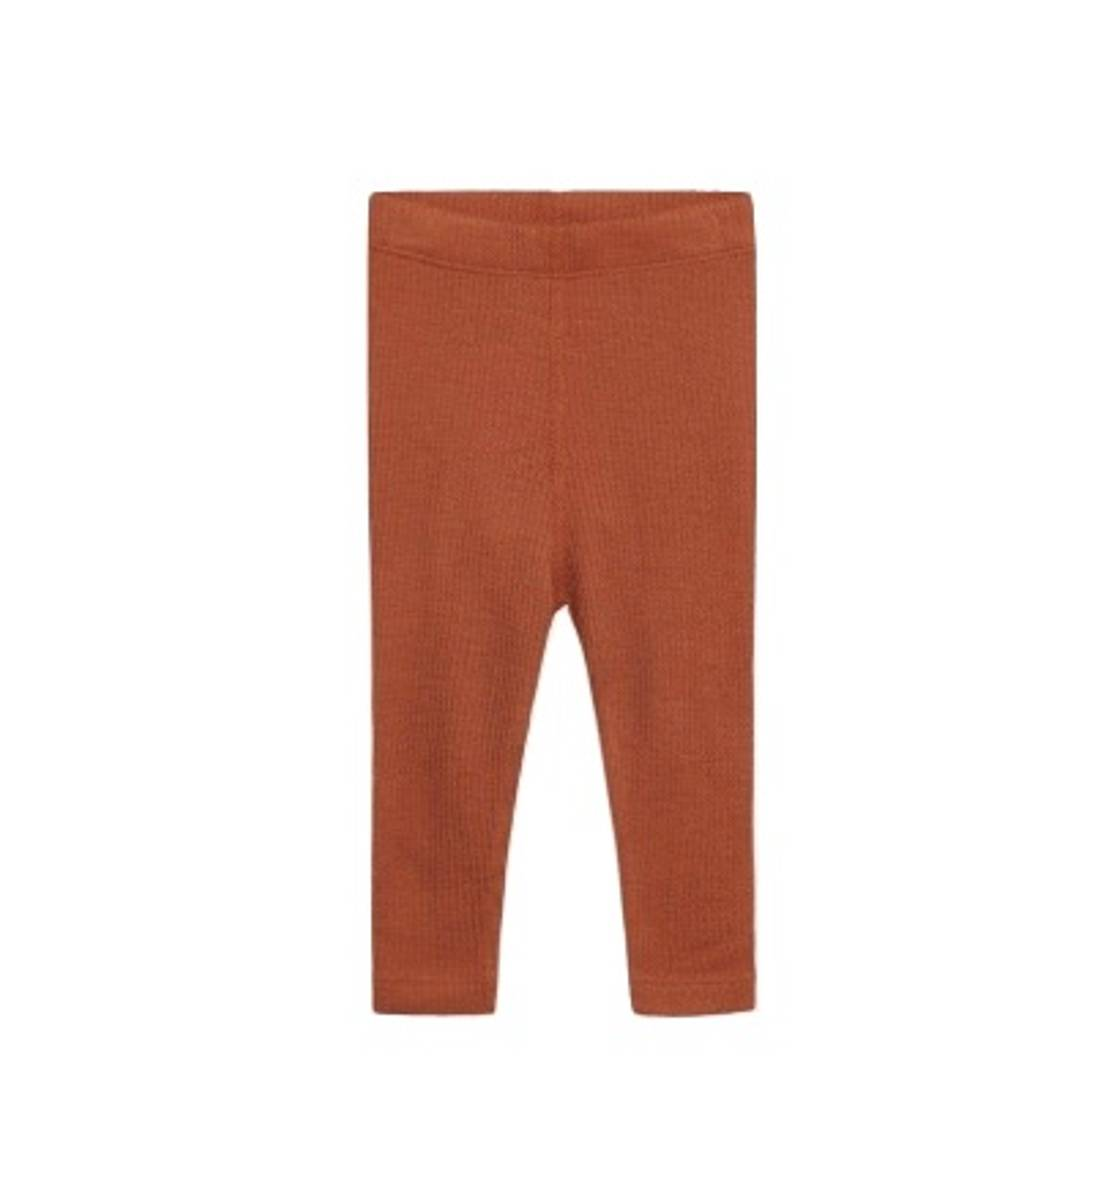 HUST AND CLAIRE - LEGGINGS ULL & BAMBUS BERRY TERRACOTTA